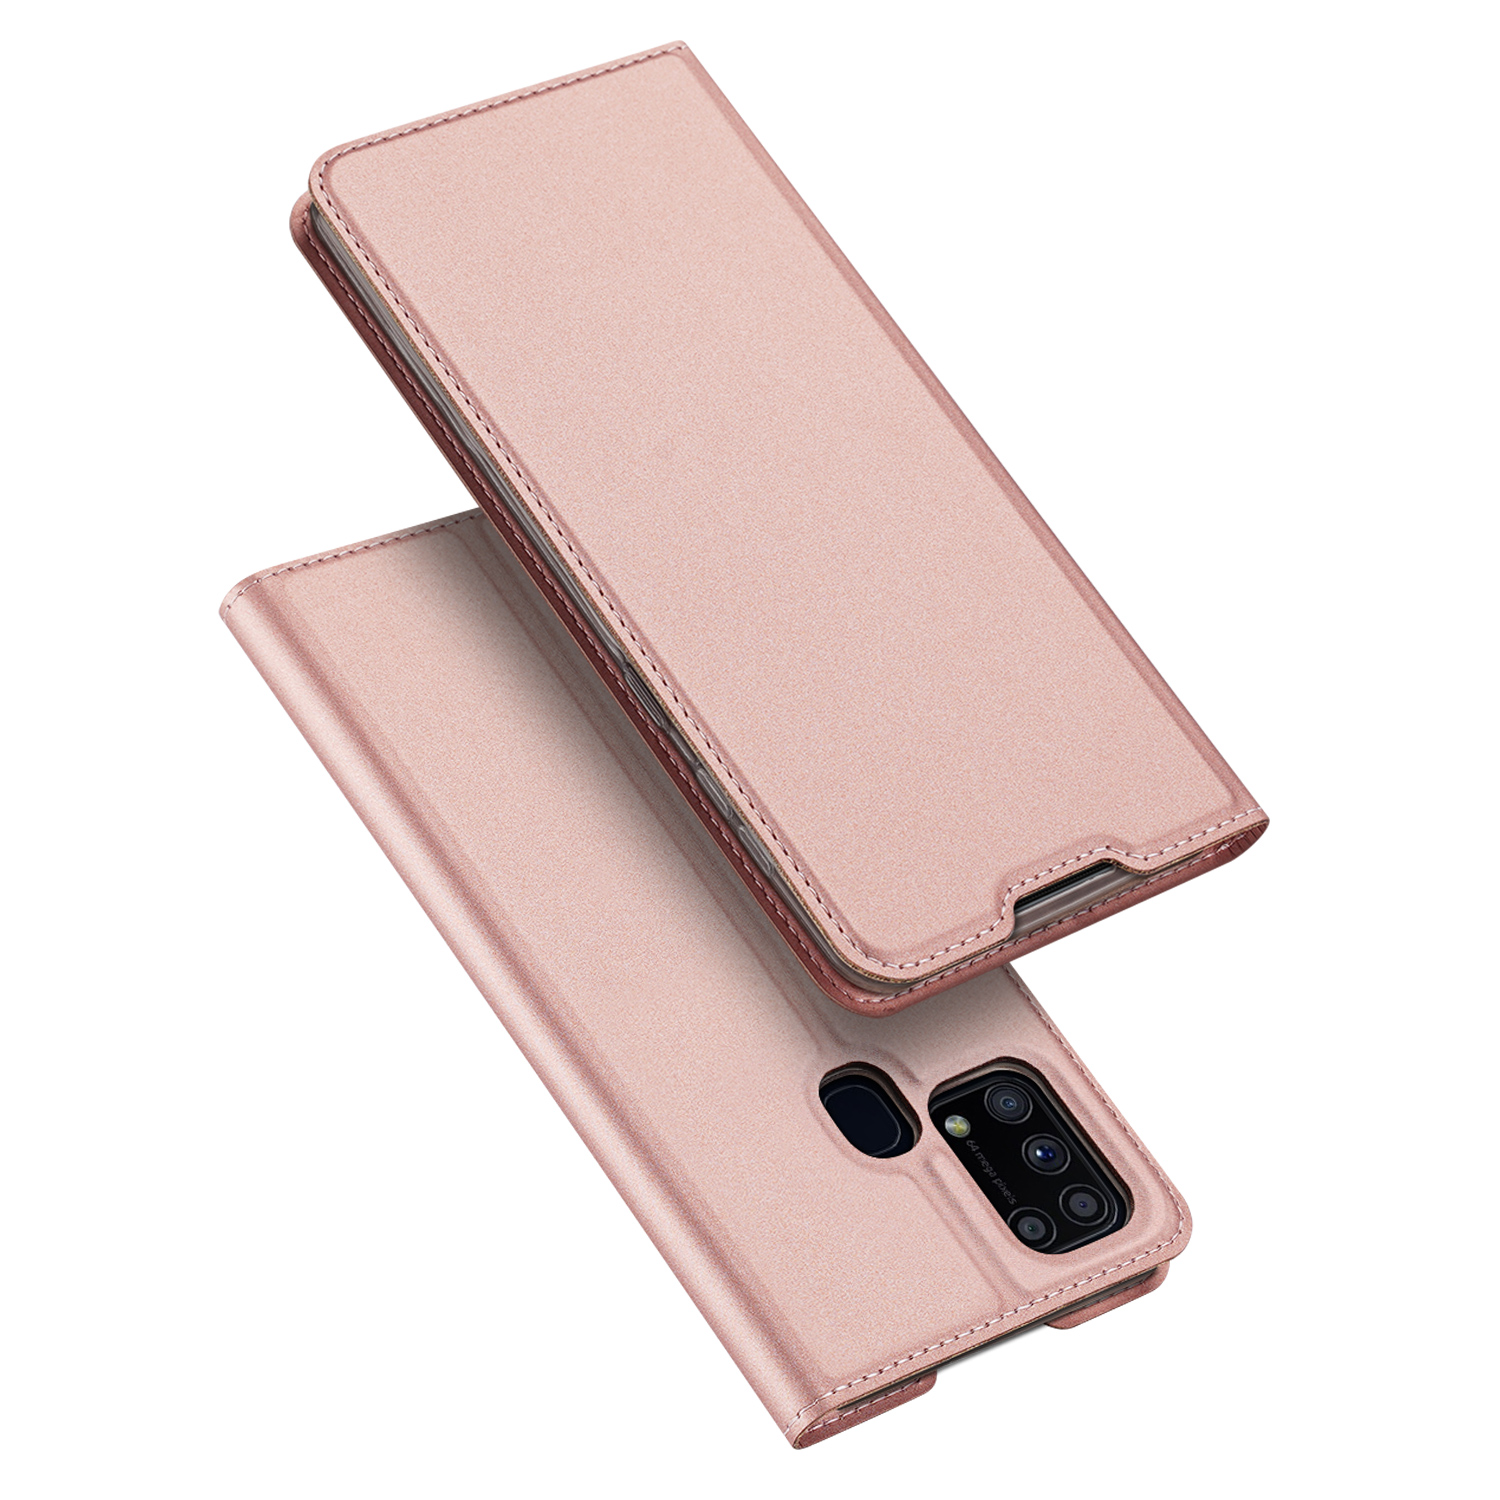 DUX DUCIS For Samsung M31 Leather Mobile Phone Cover Magnetic Protective Case Bracket with Cards Slot Pink